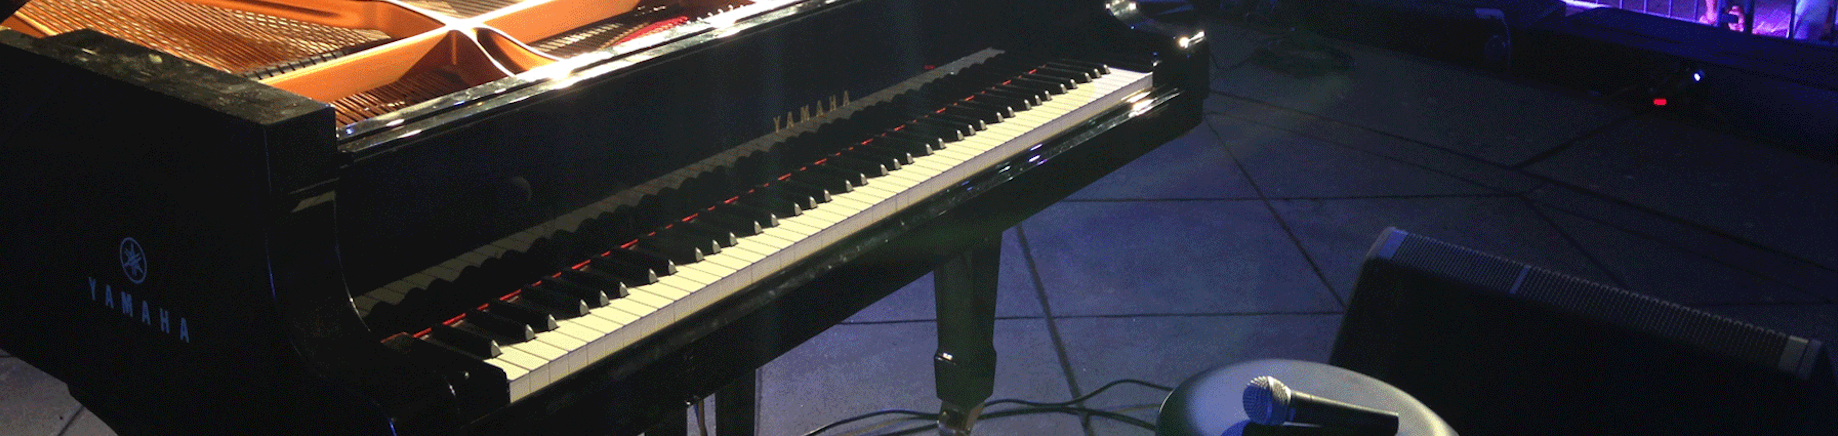 Close up of Yamaha piano on a concert stage